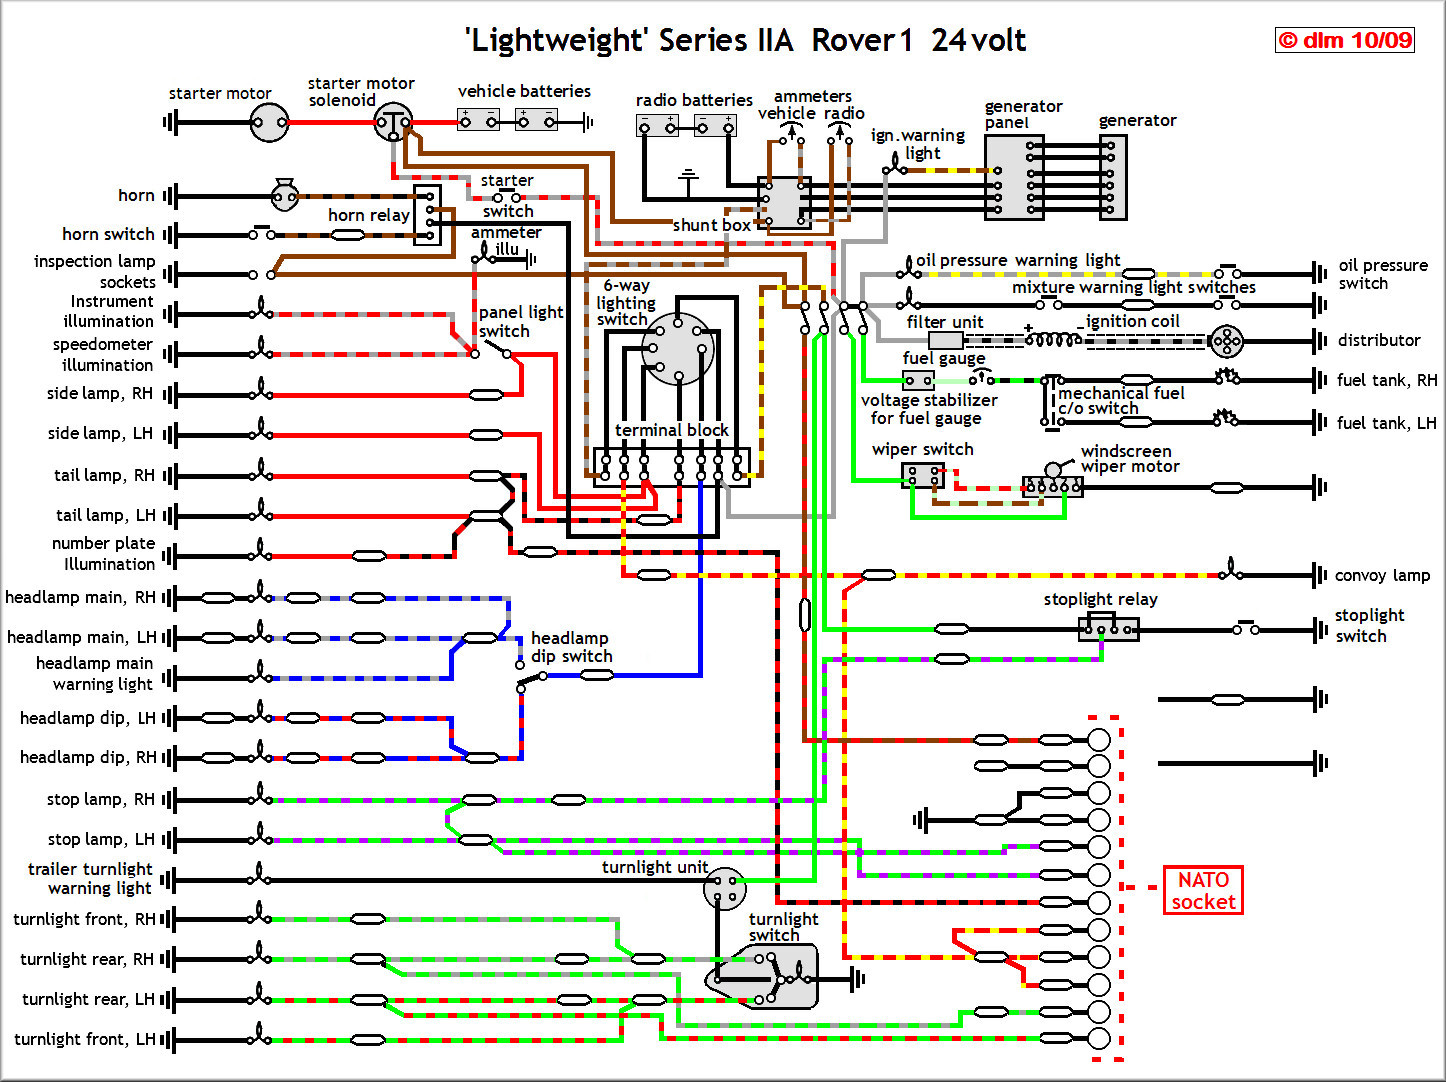 Land Rover 110 Wiring Diagrams Auto Electrical Wiring Diagram BMW Wiring  Diagrams Visual 90 Rx7 Wiring Diagram. Source. 1980 mazda rx7 ...